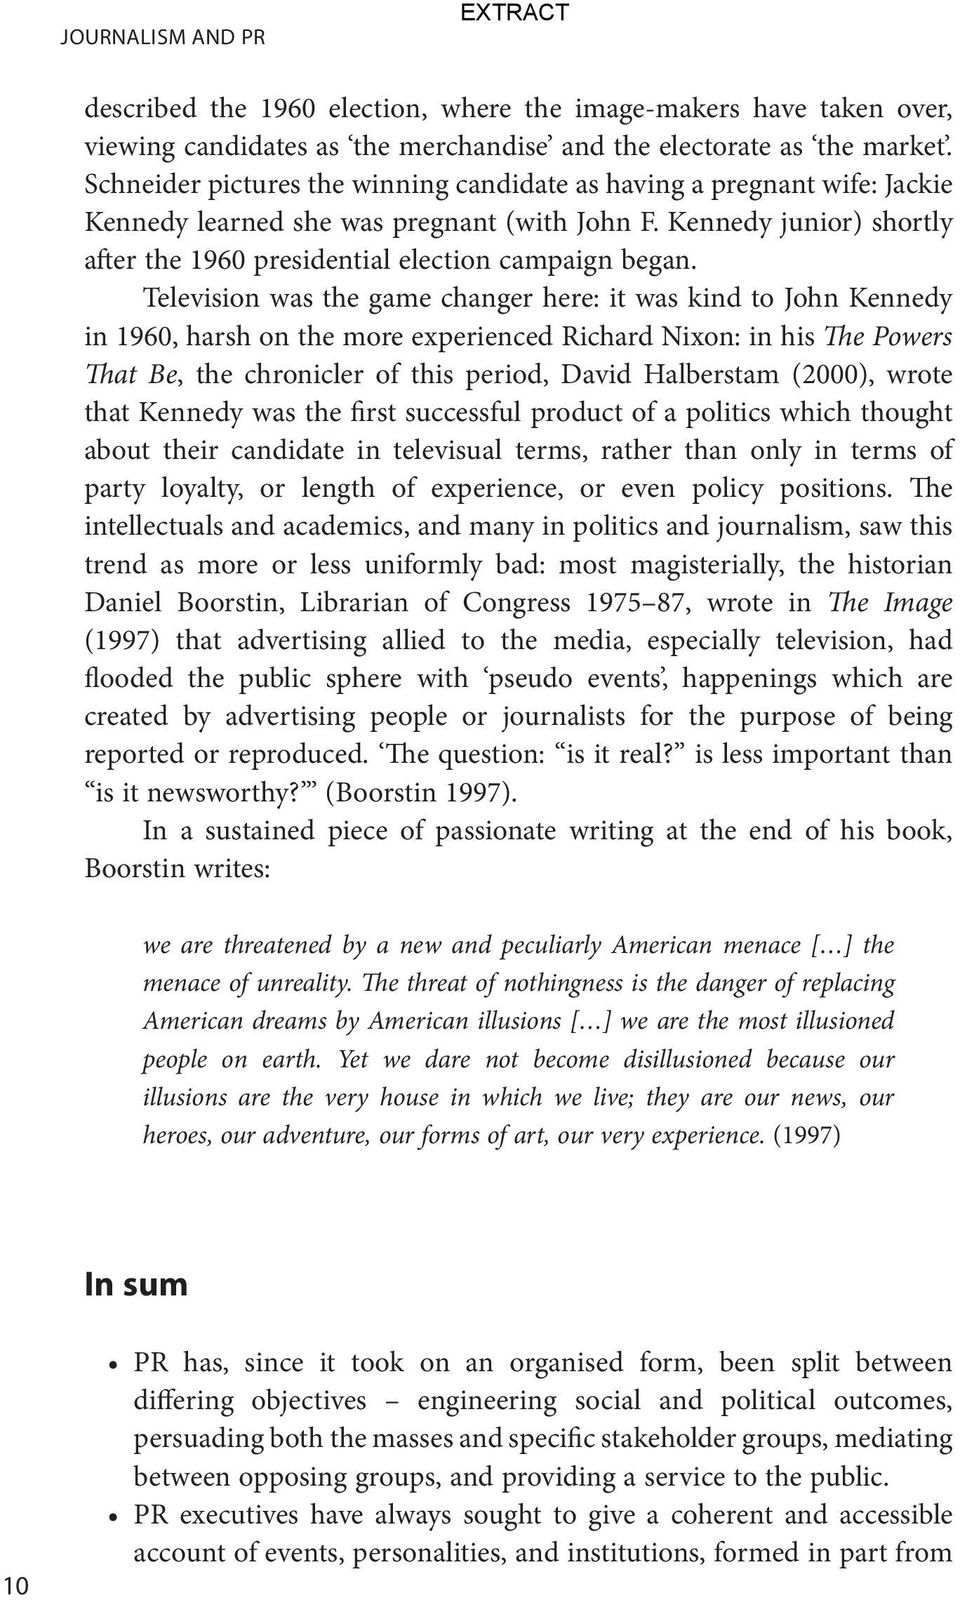 Television was the game changer here: it was kind to John Kennedy in 1960, harsh on the more experienced Richard Nixon: in his The Powers That Be, the chronicler of this period, David Halberstam